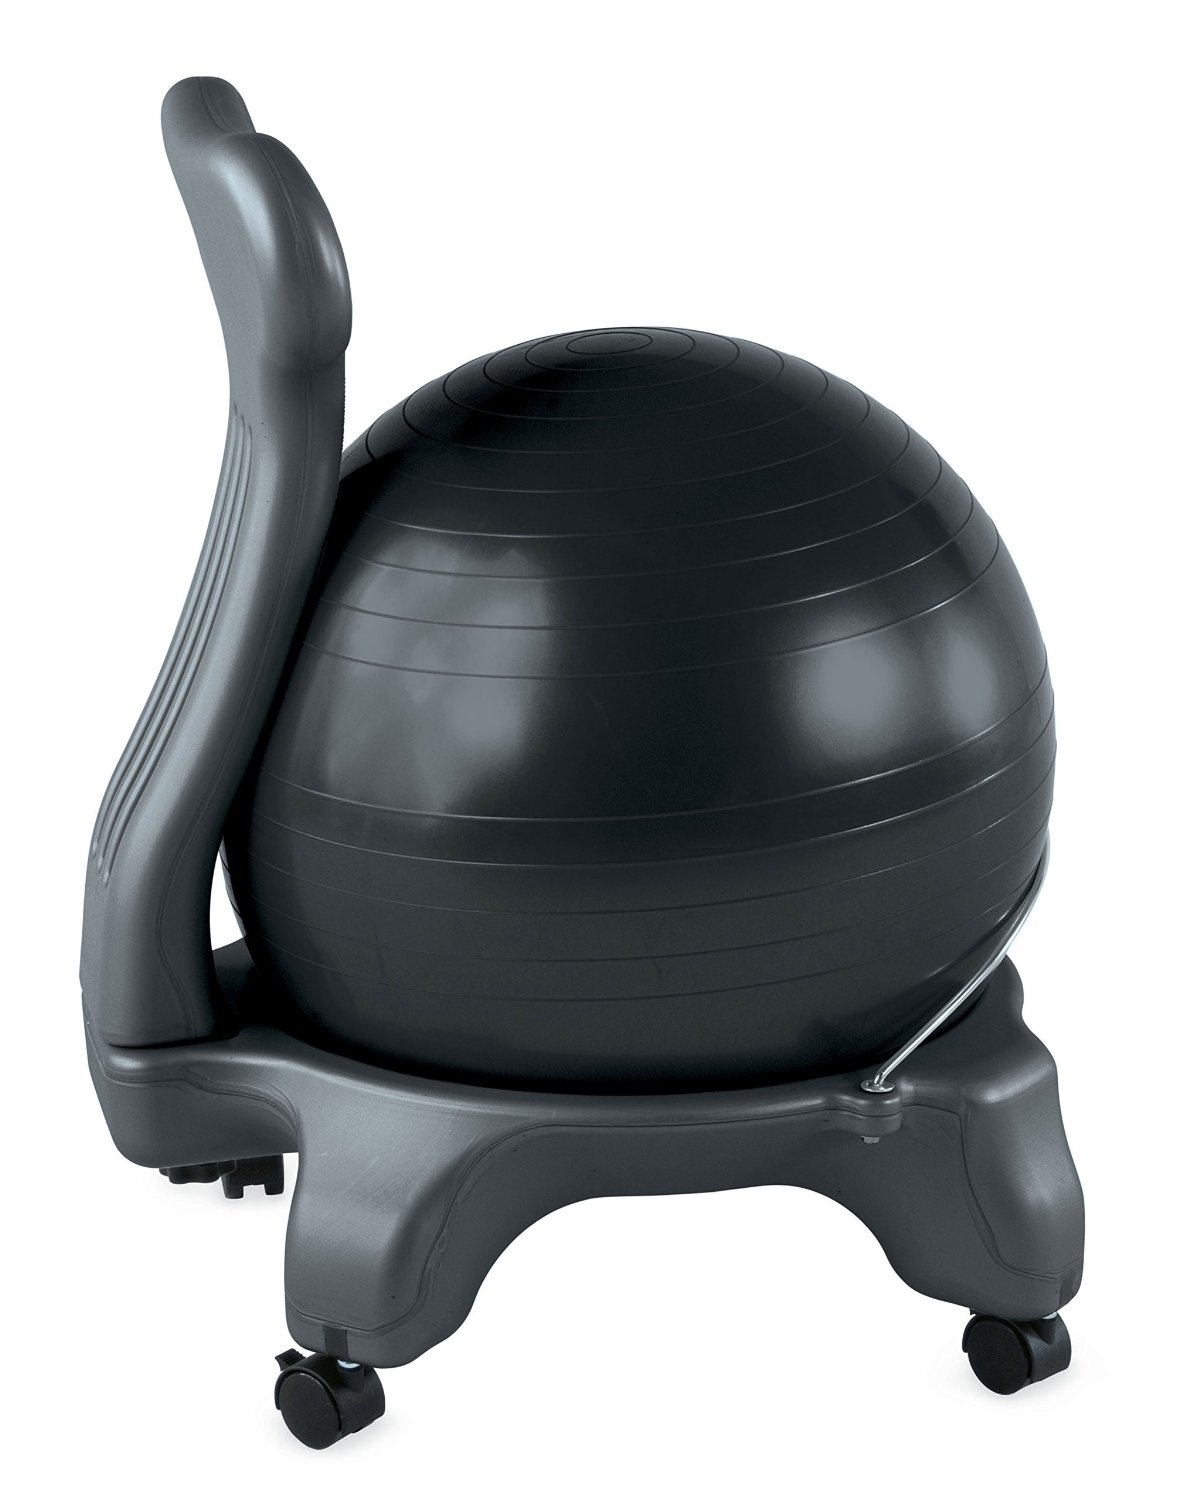 Pilates Ball Chair 2014 Marfan Rd Gift And Resource Guide Musings Of A Marfan Mom